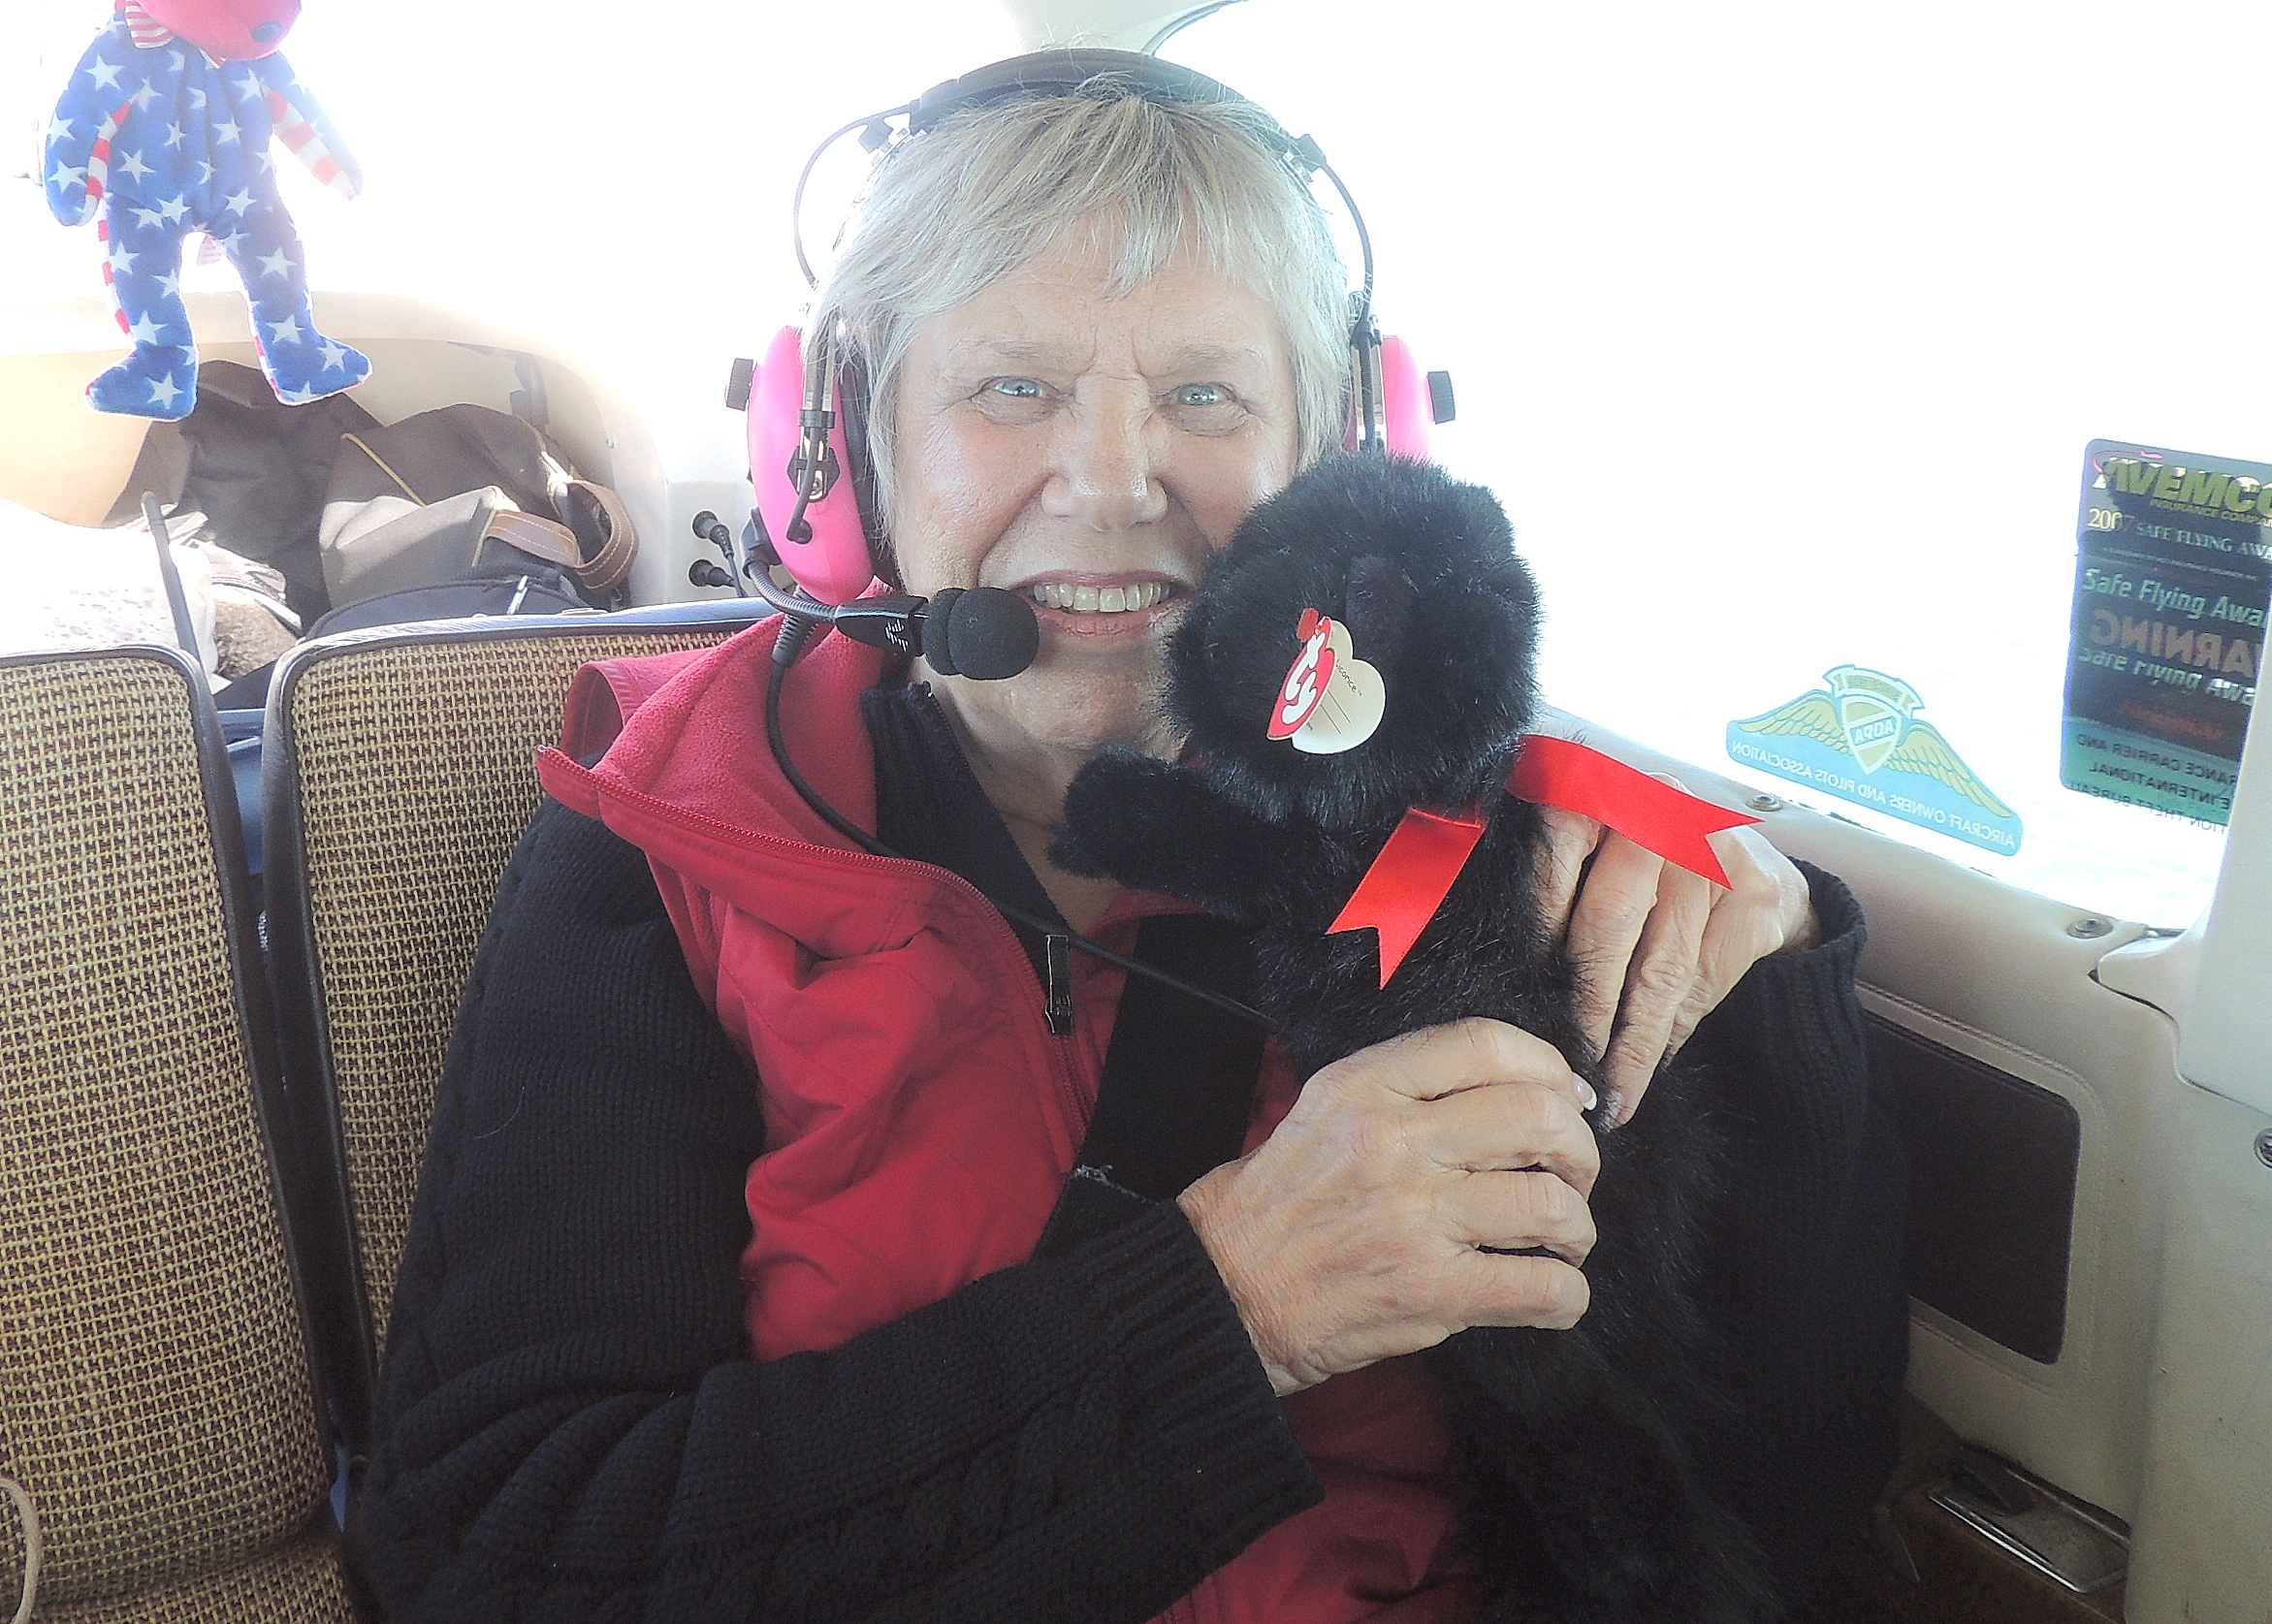 Elaine with her new Kitty...... (Hope it gets along well with her Dog)